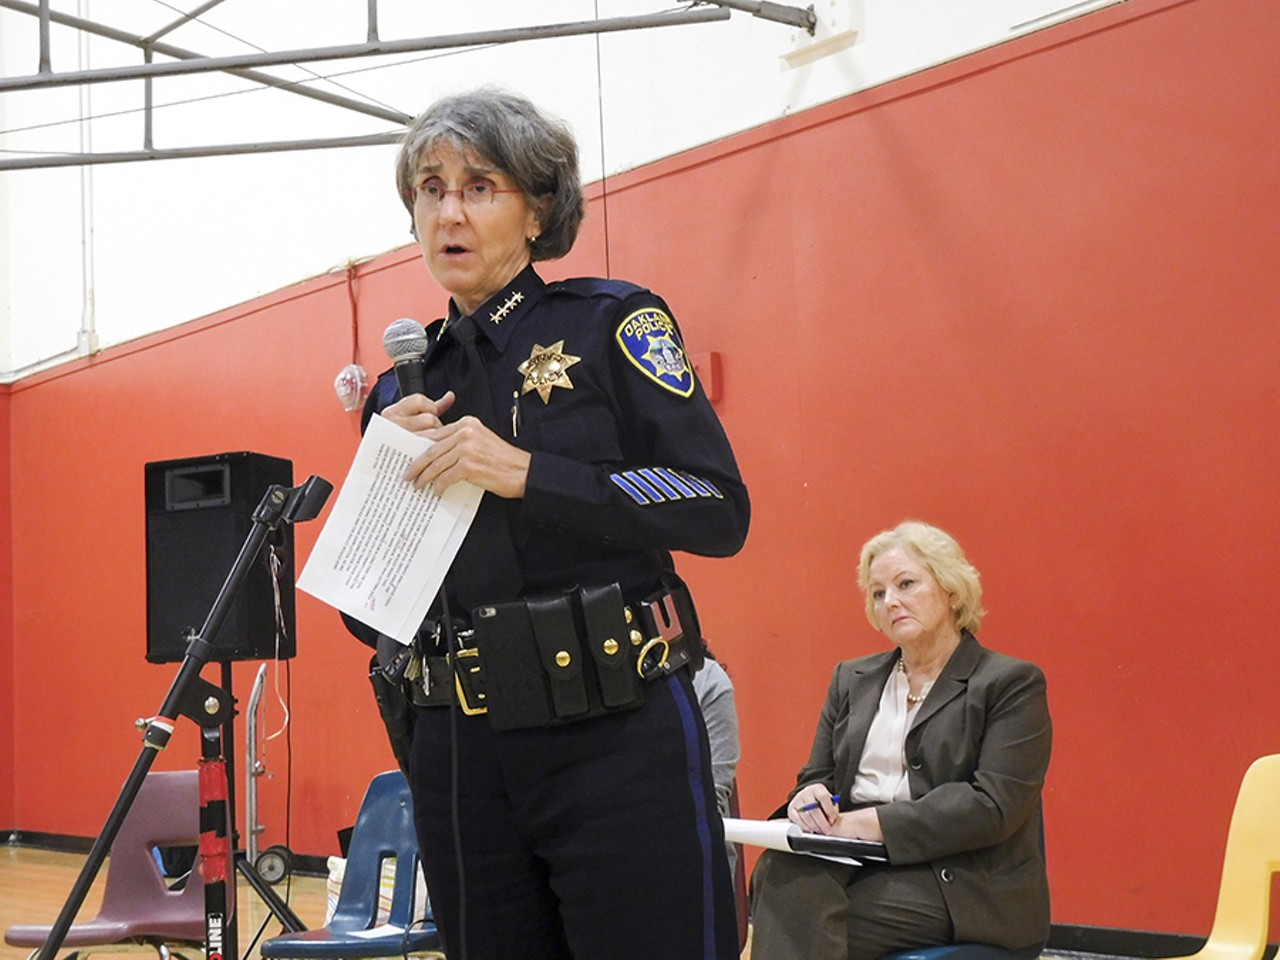 Oakland Police Chief Made False Statements About ICE Raid | East Bay